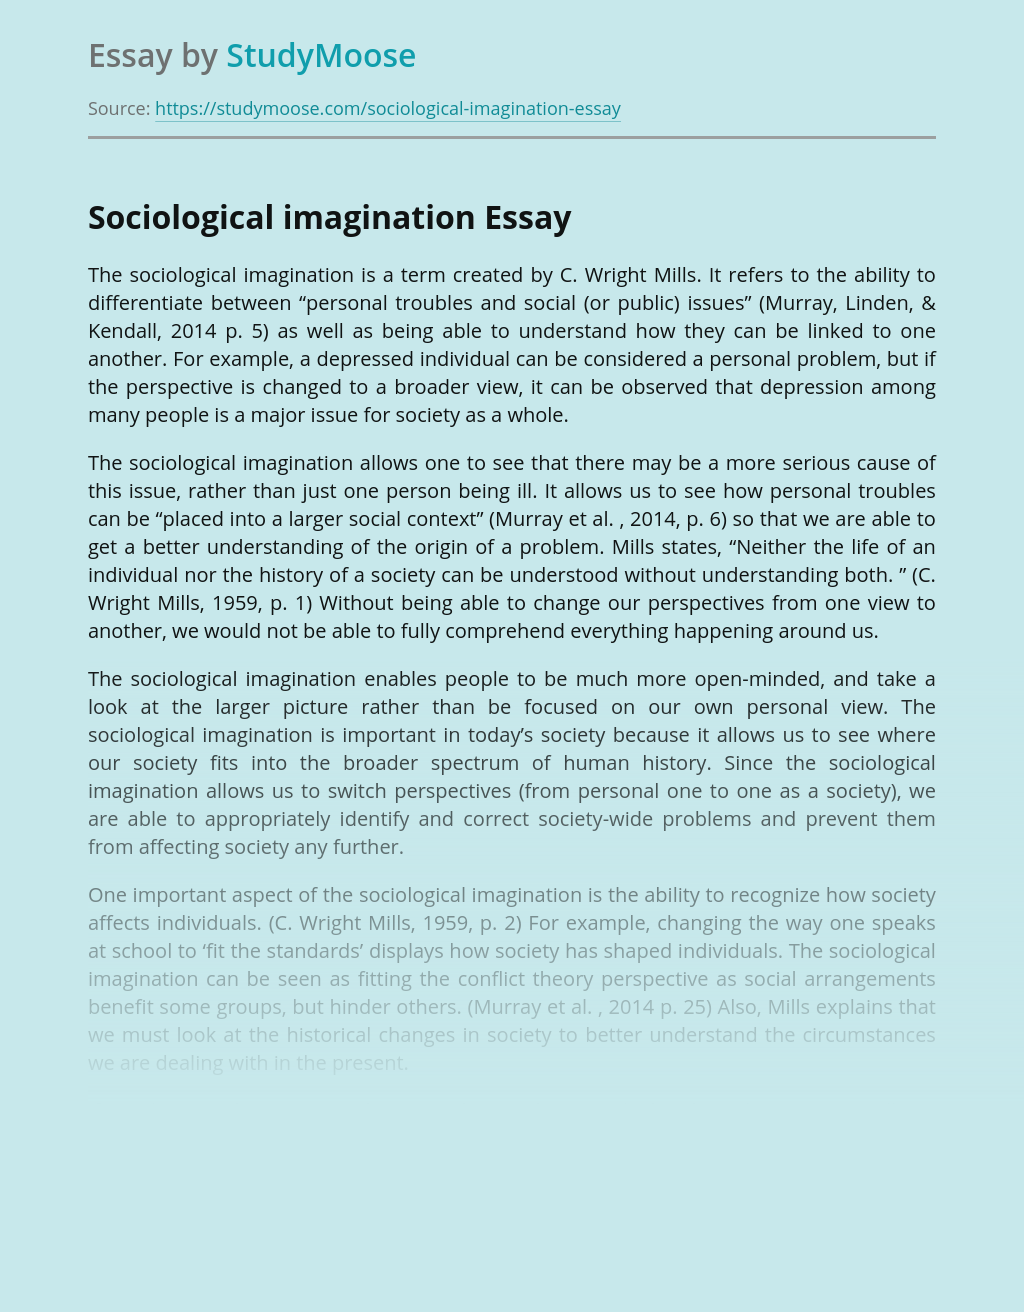 Sociological imagination by C. Wright Mills: Explanation